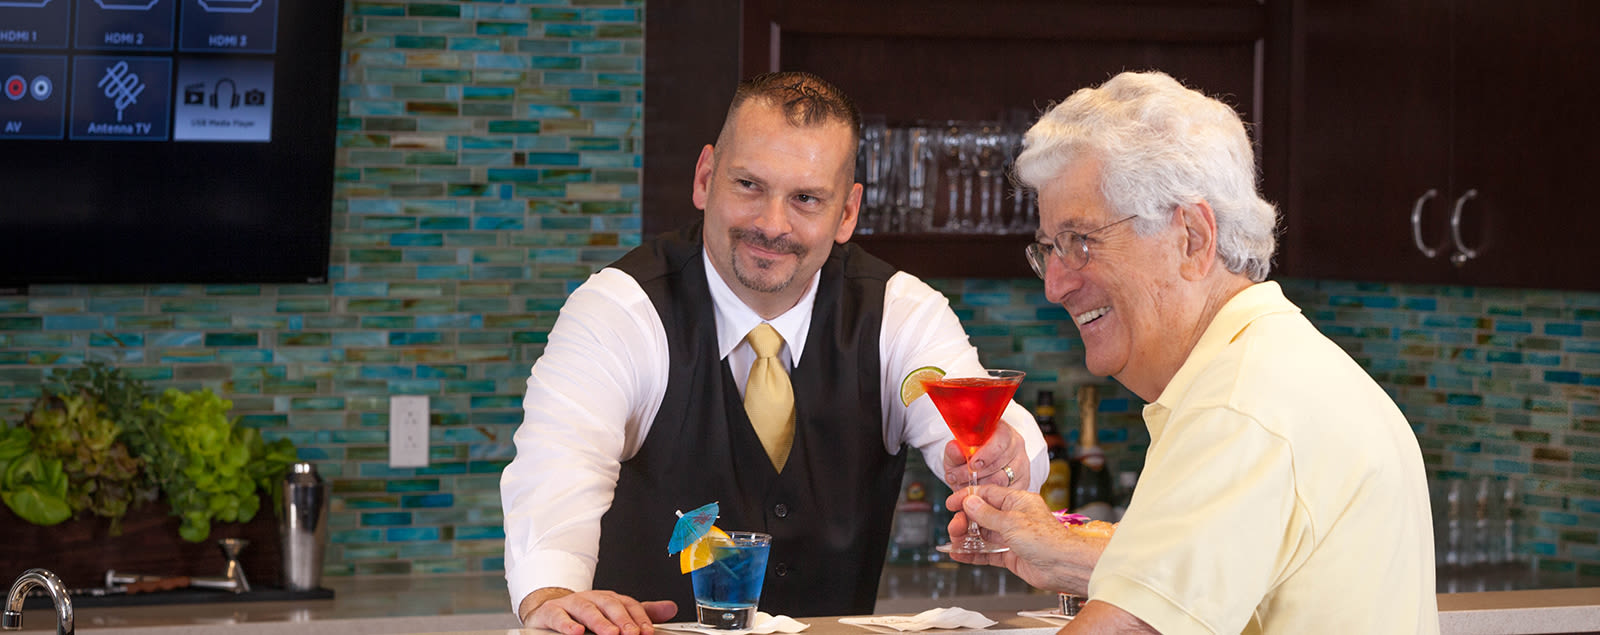 Find out more about our independent senior living offerings in Orlando